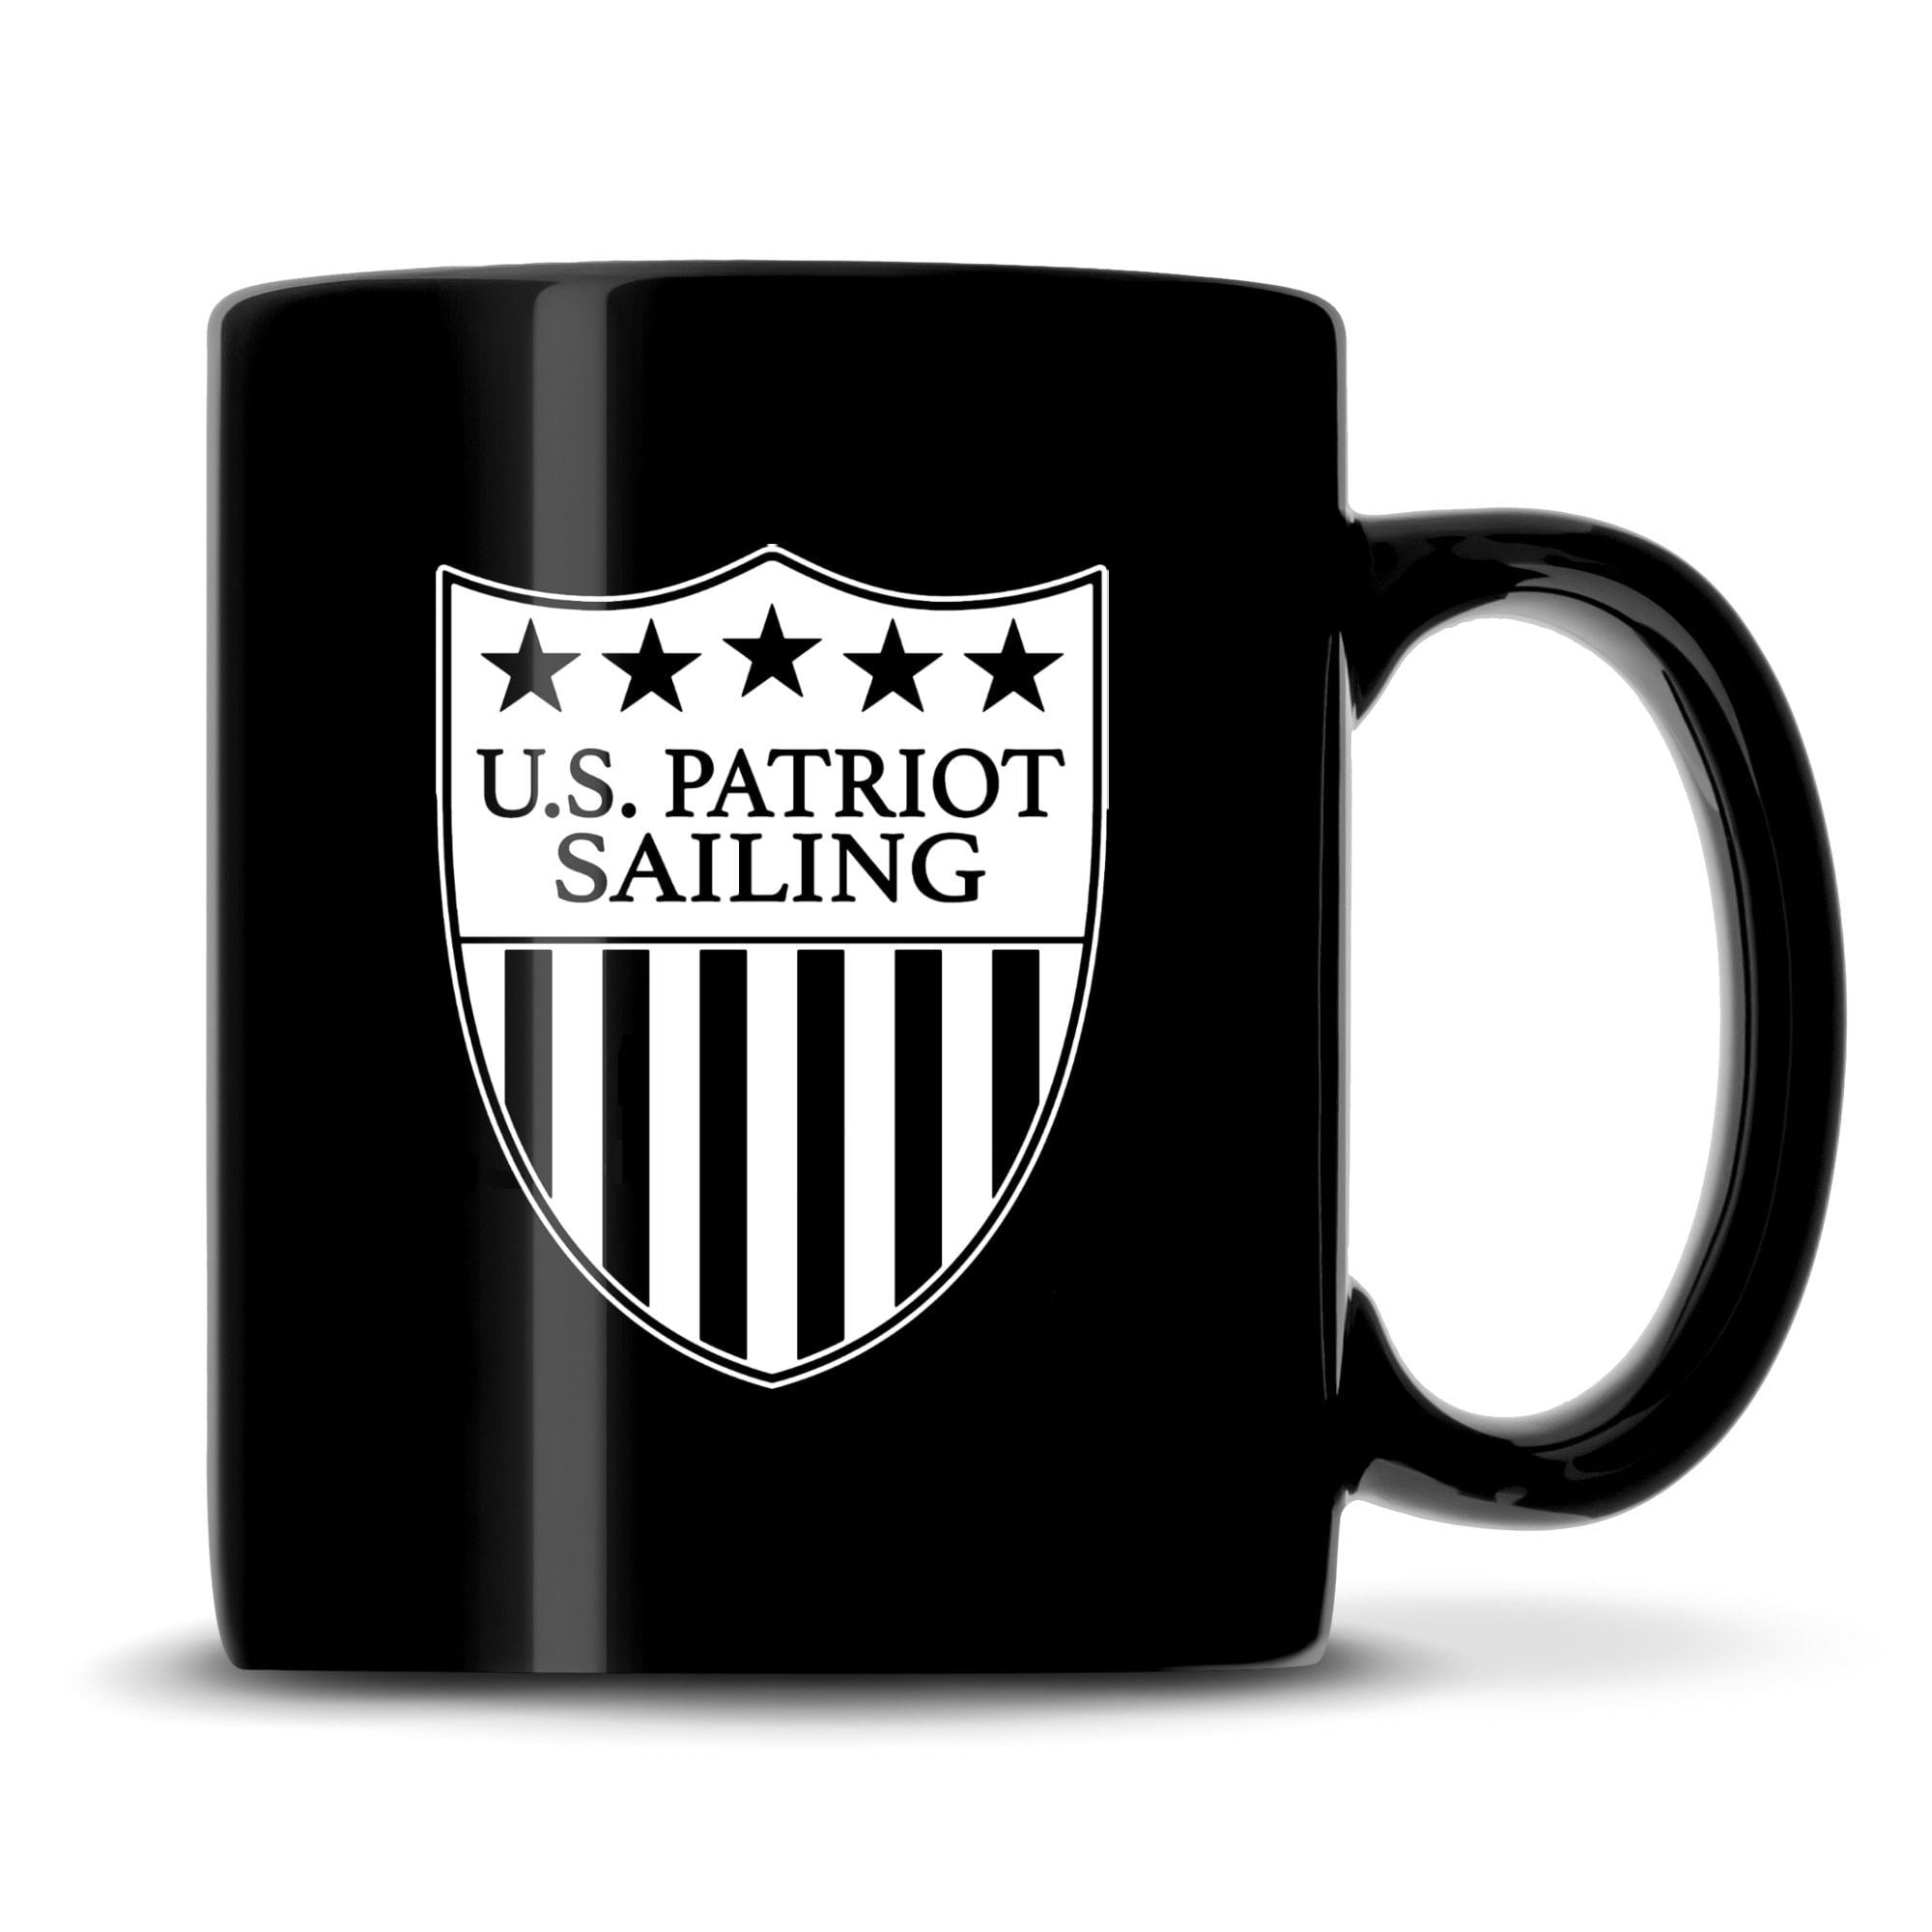 Premium US Patriot Sailing Coffee Mug, 15.3oz Deep Etched Coffee Cup, Made in USA by Integrity Bottles